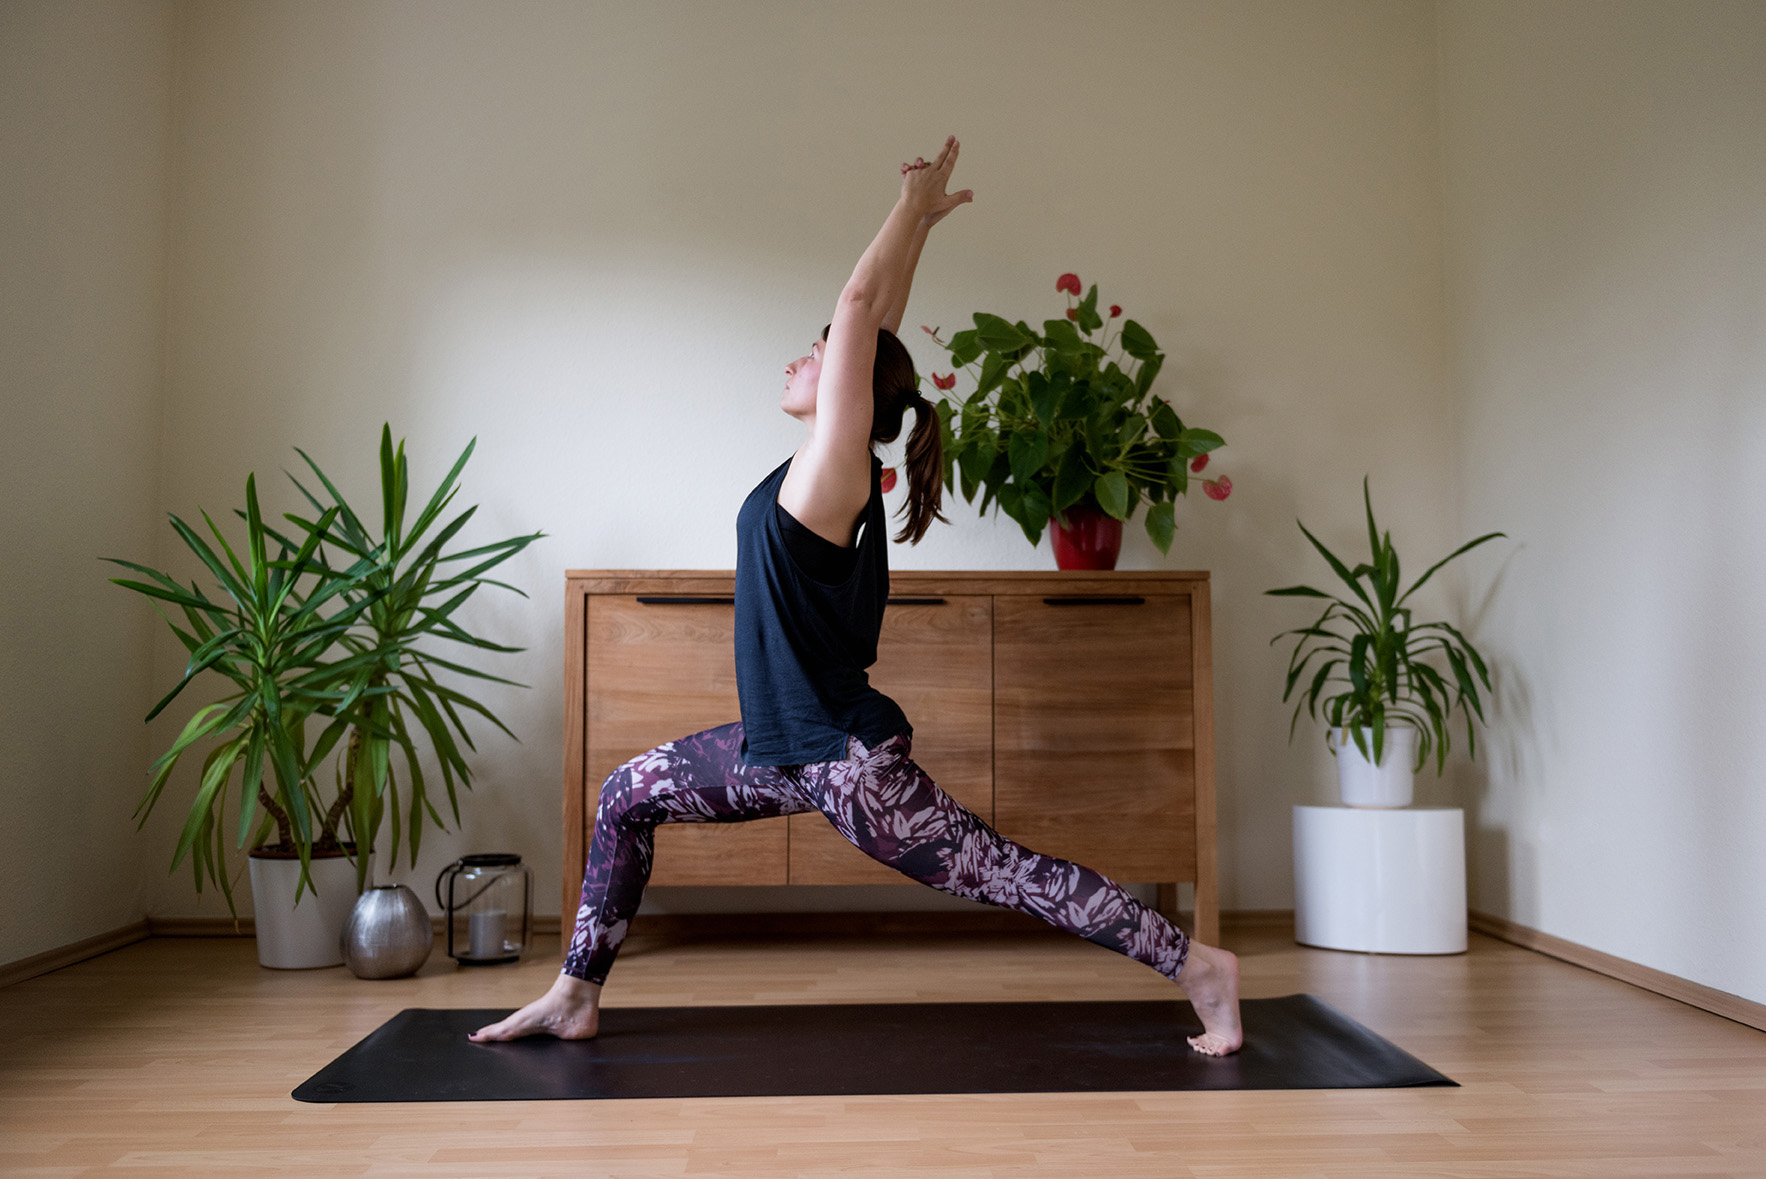 greenlooksgreat-anne-yoga-krieger